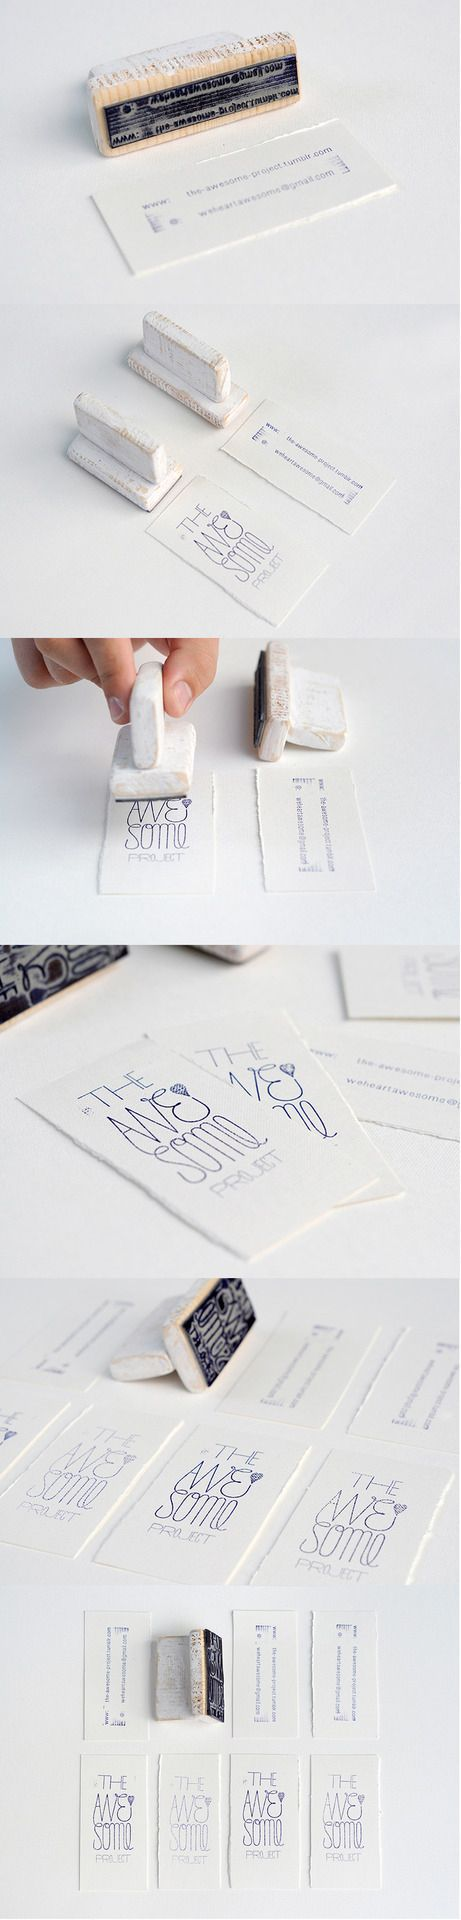 Hand-Made Awesome Business Cards